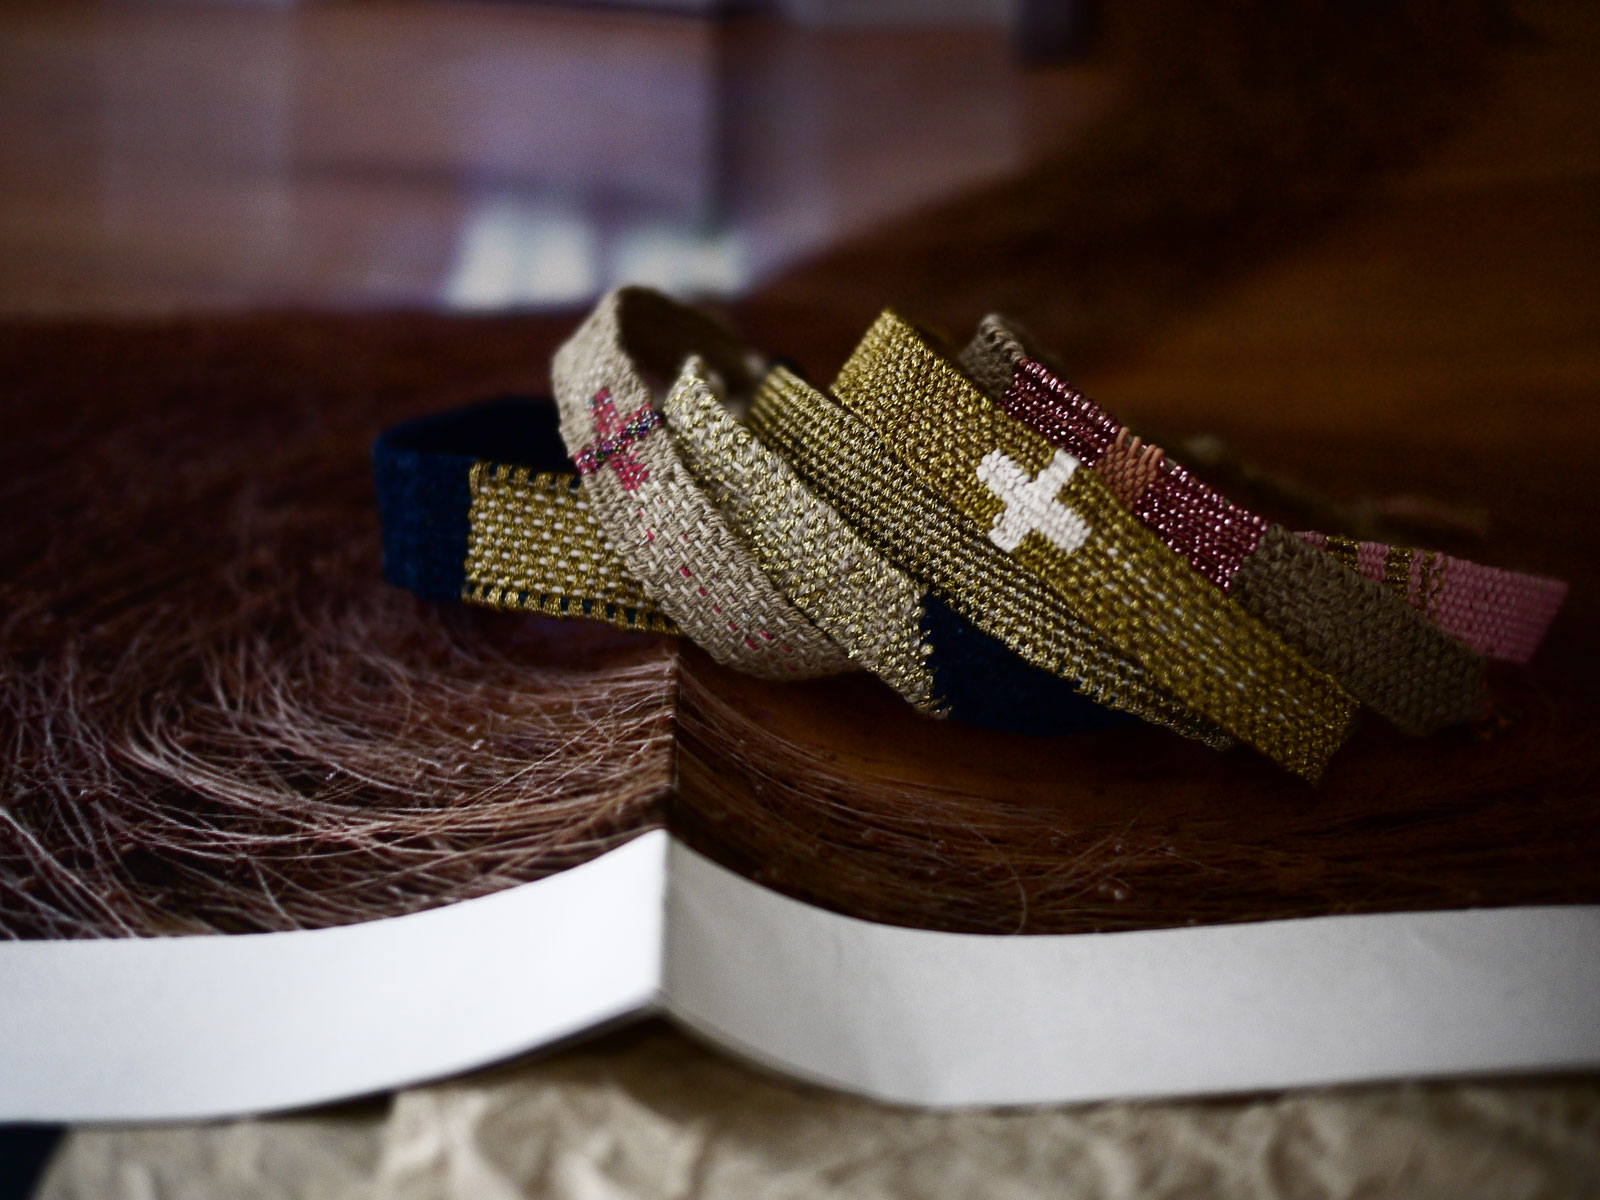 Bracelets LOOM - Design textile by Myriam Balaÿ myriam-balay-tissage1 AT WORK L'appartement